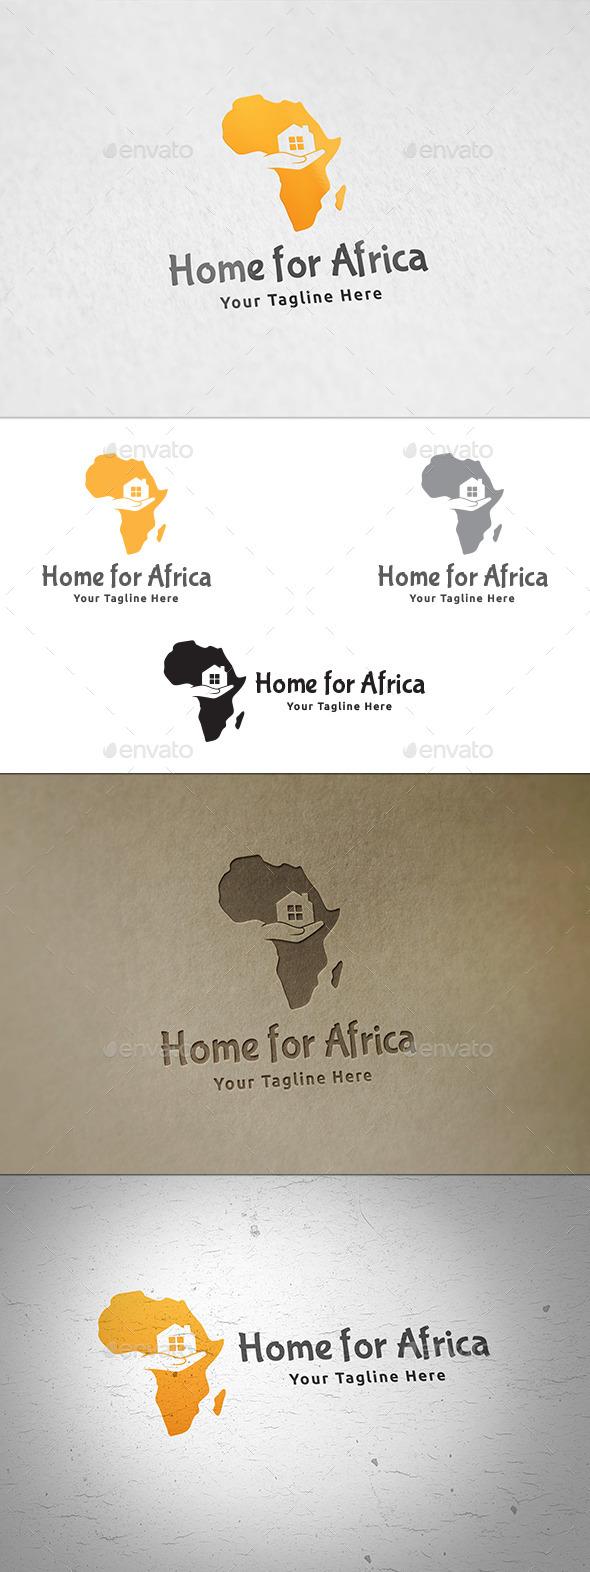 Home for Africa Logo